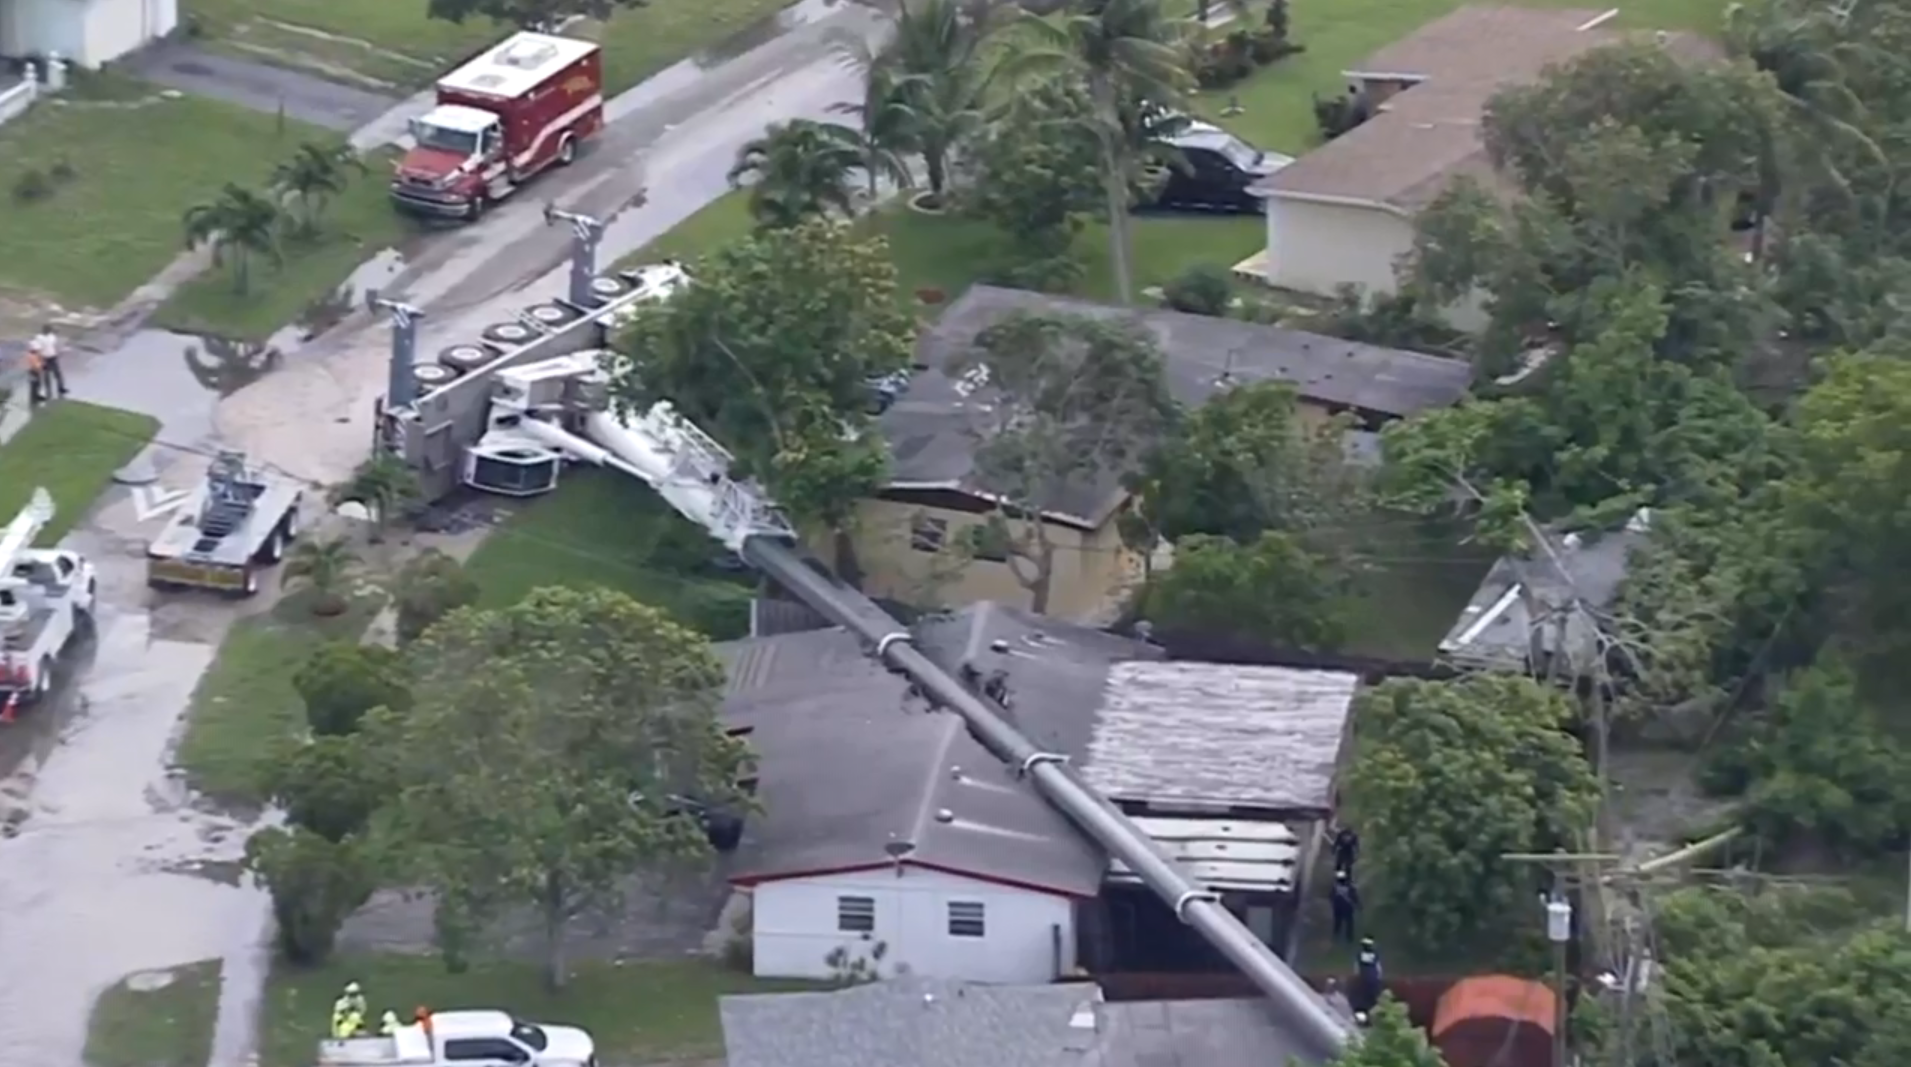 Crane collapse today in Florida, falls onto several homes in